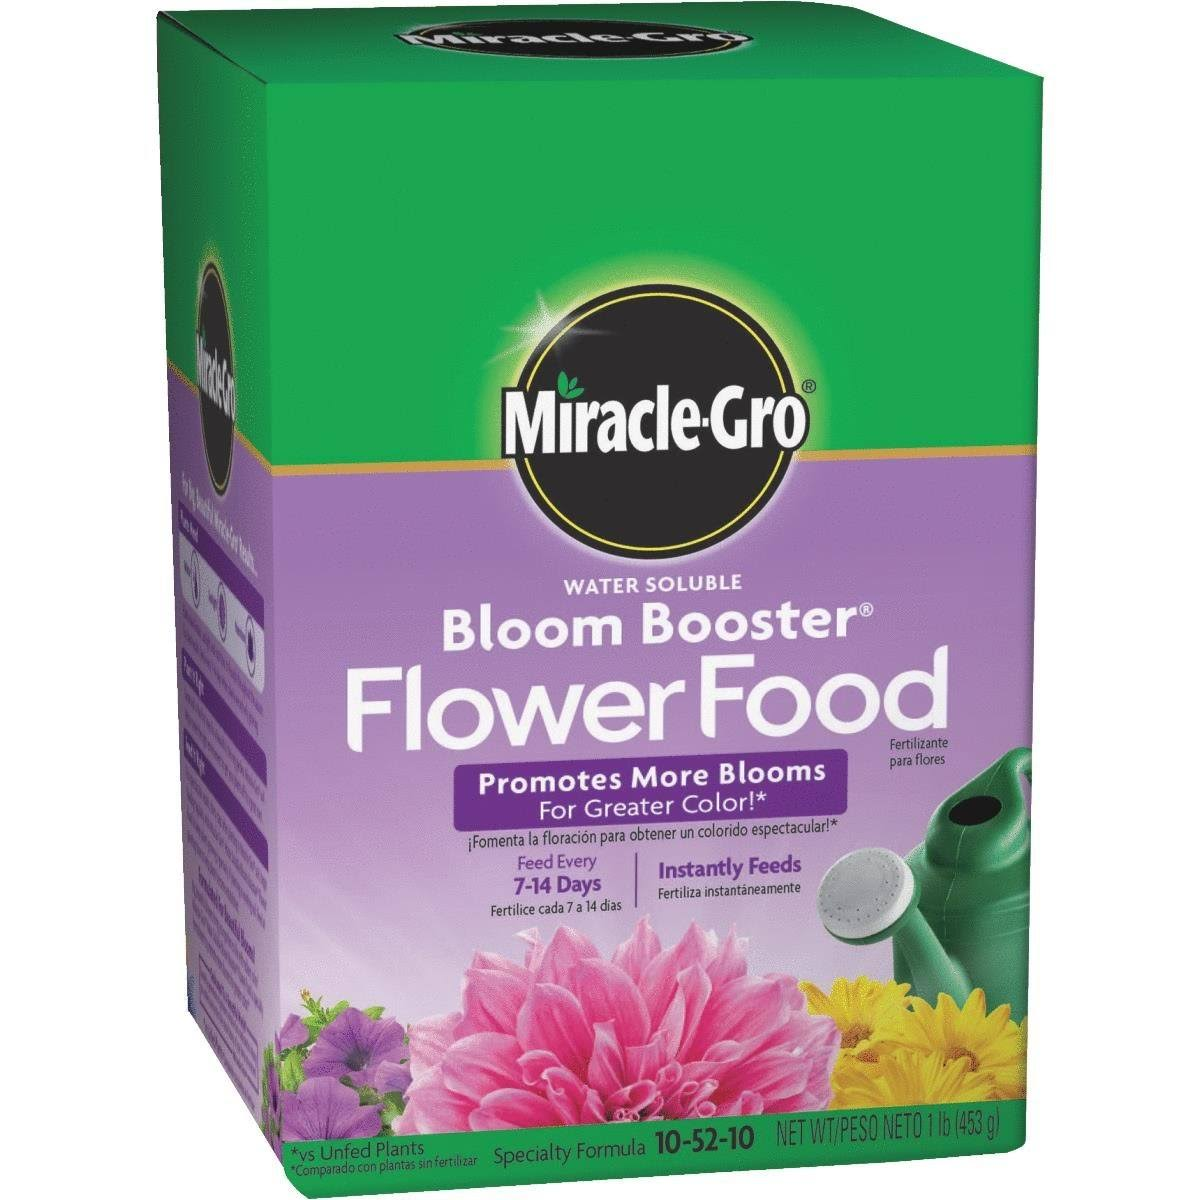 Miracle Gro Water Soluble Bloom Booster Flower Food - 1lb